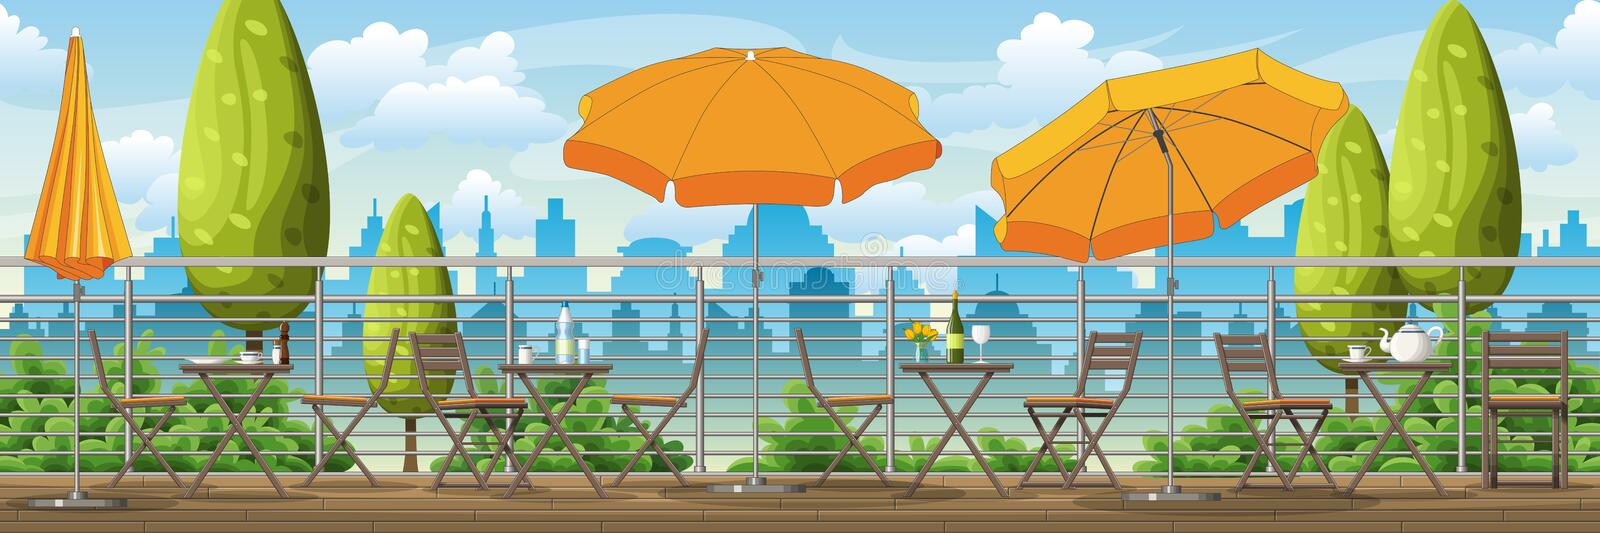 A balcony, a terrace with tables and chairs. Illustration of a balcony, a terrace with tables and chairs royalty free illustration